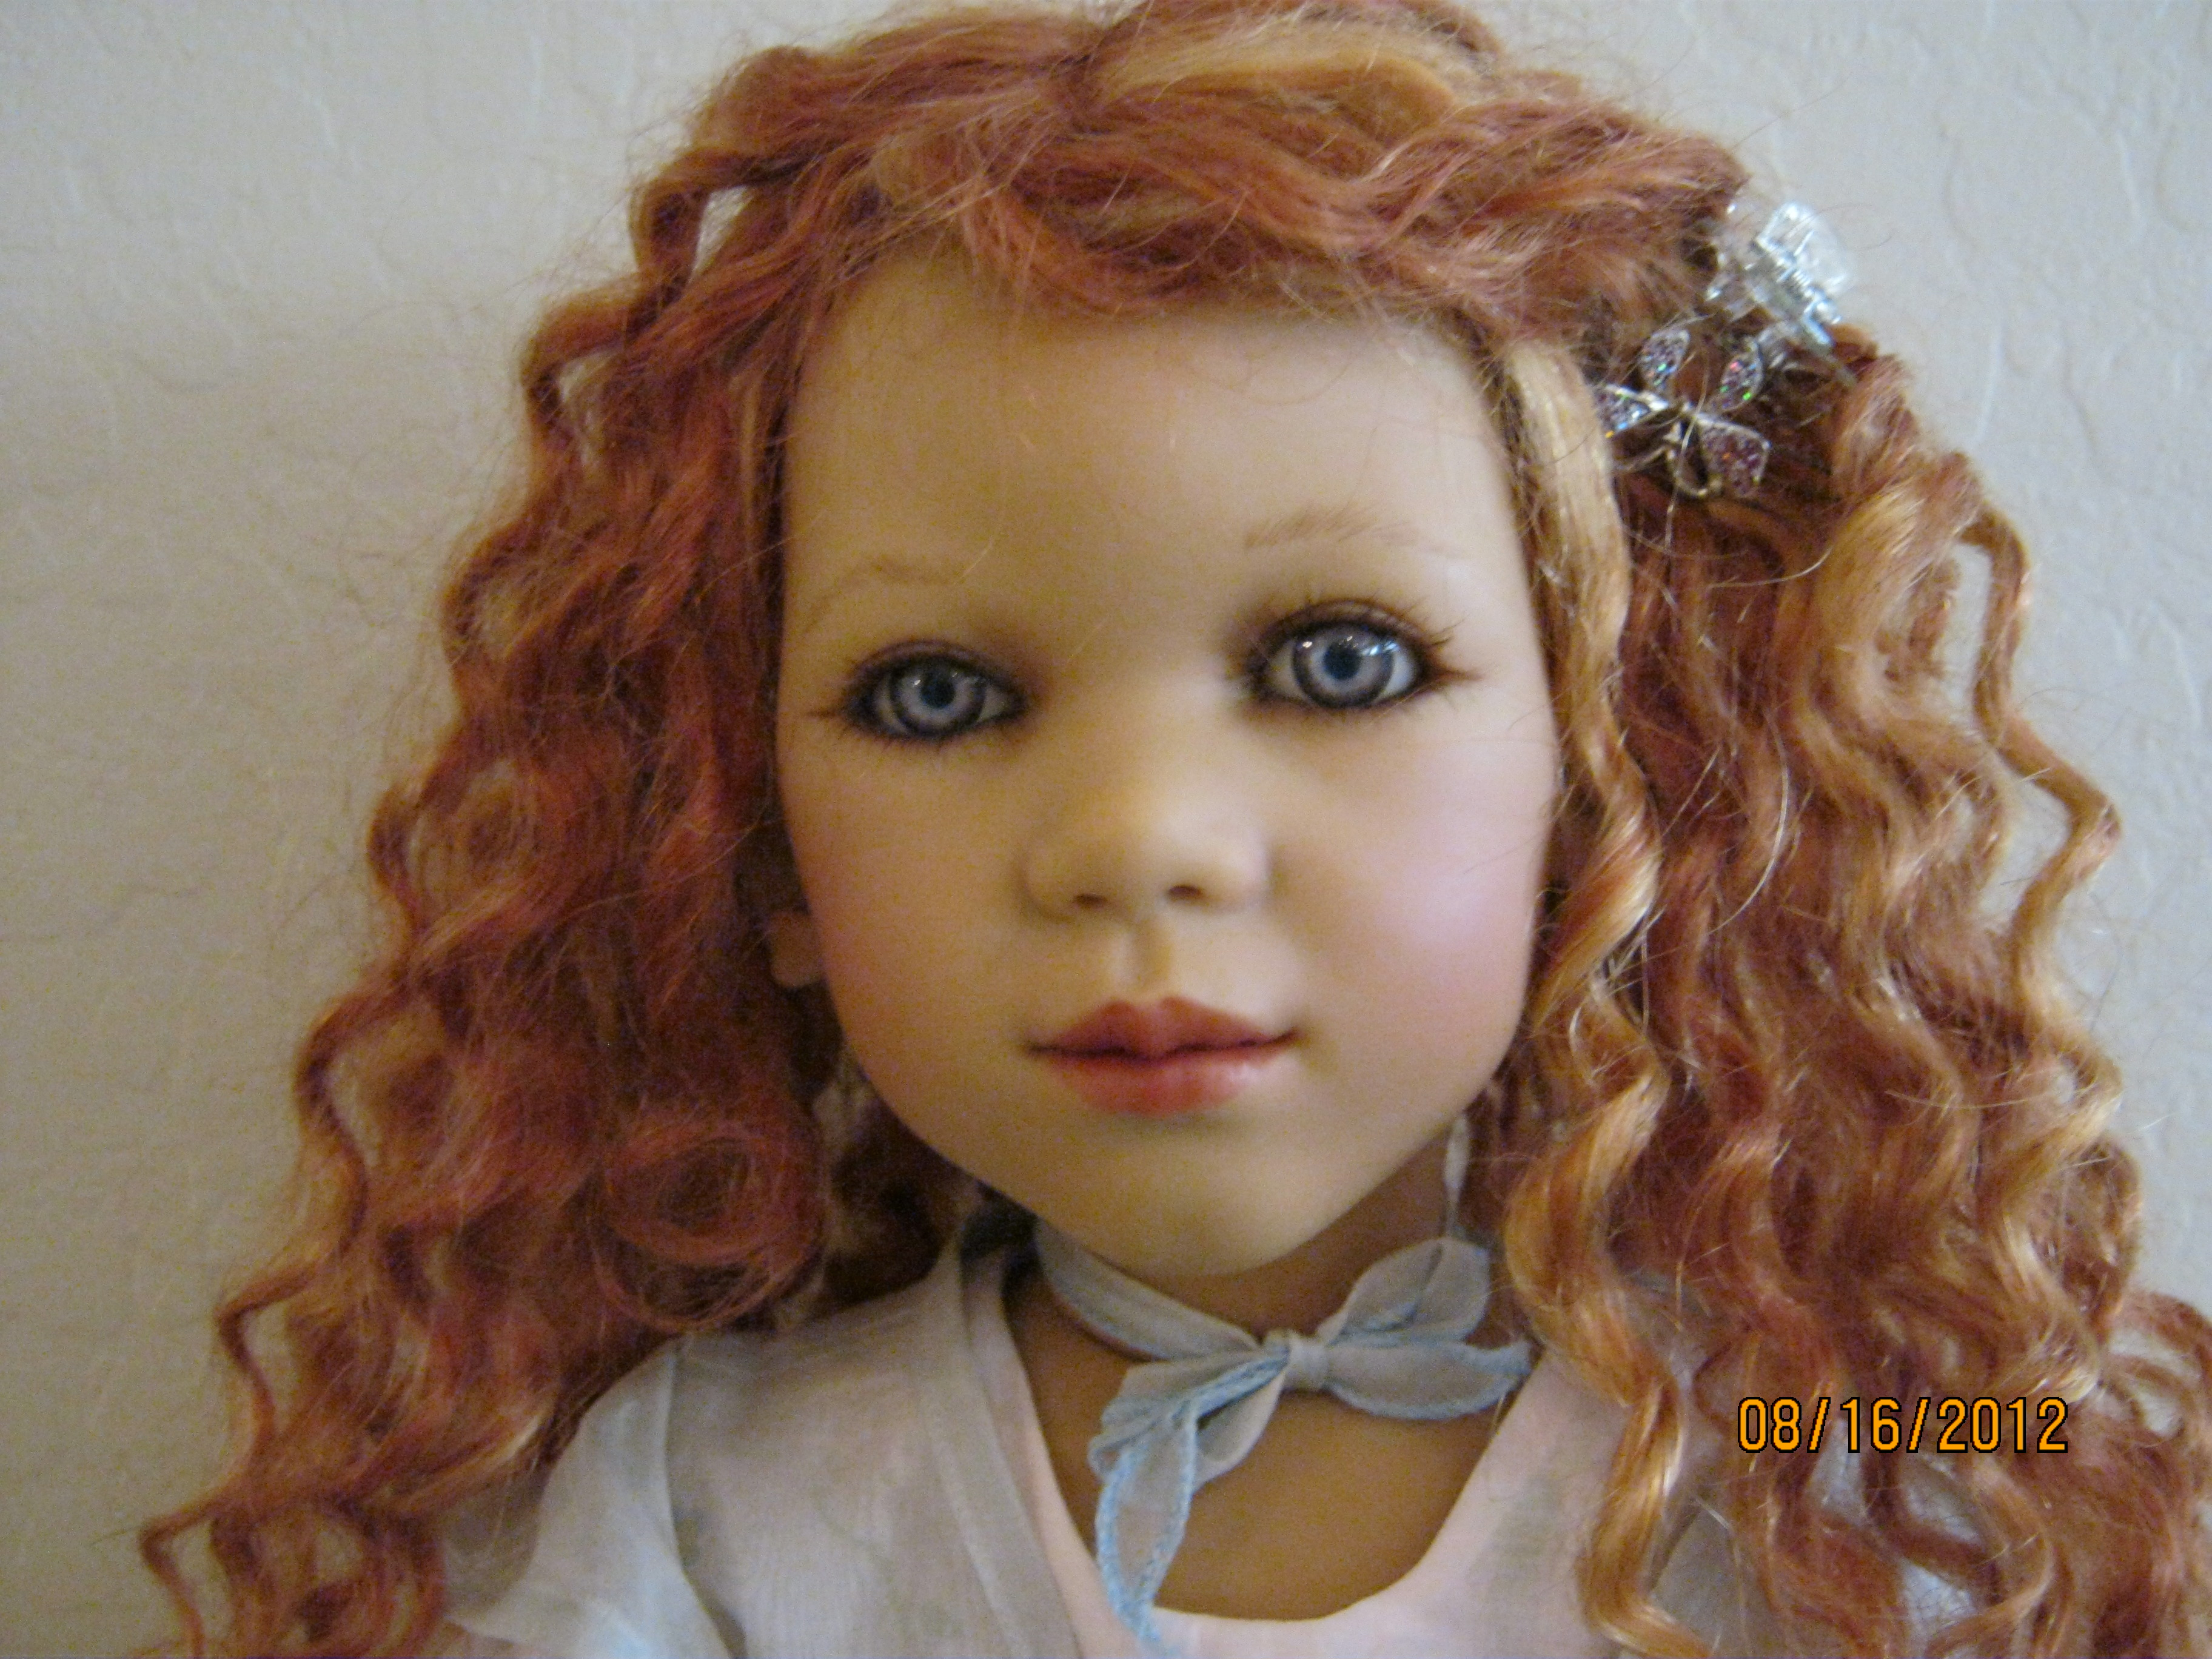 Annette Himstedt S Beautiful Krissi Ii Doll Sold For 280